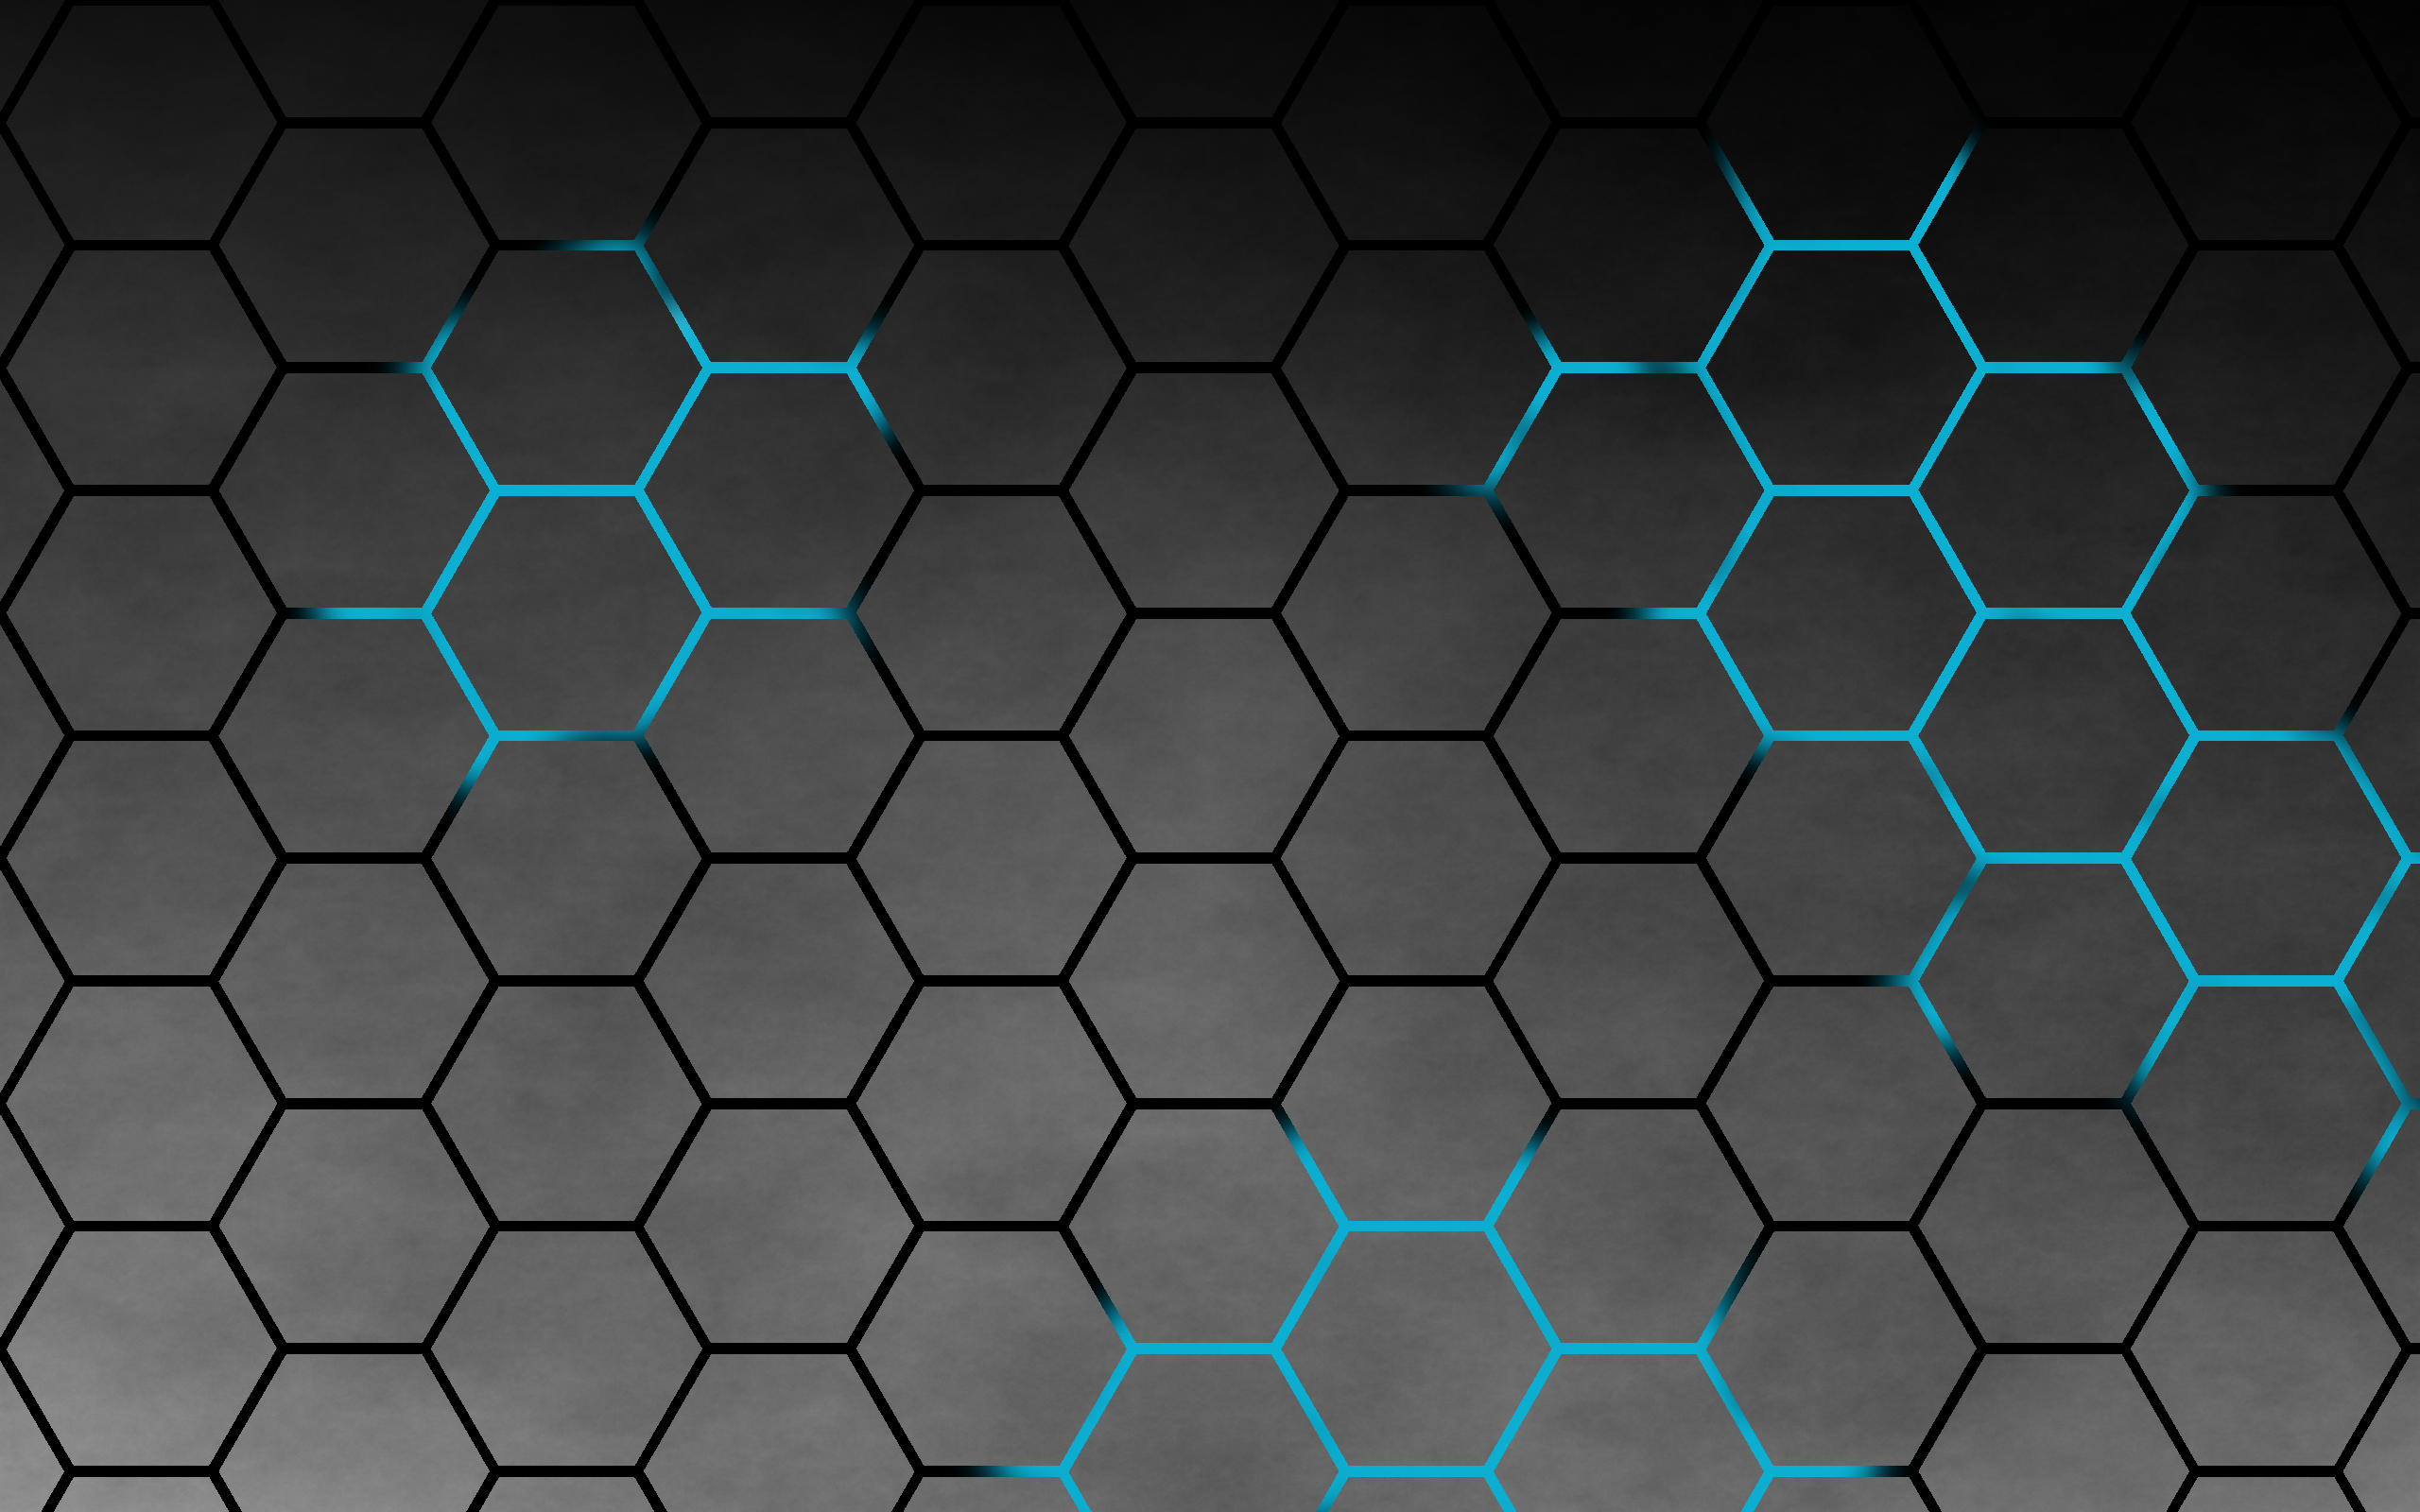 Hexagon HD Wallpaper.